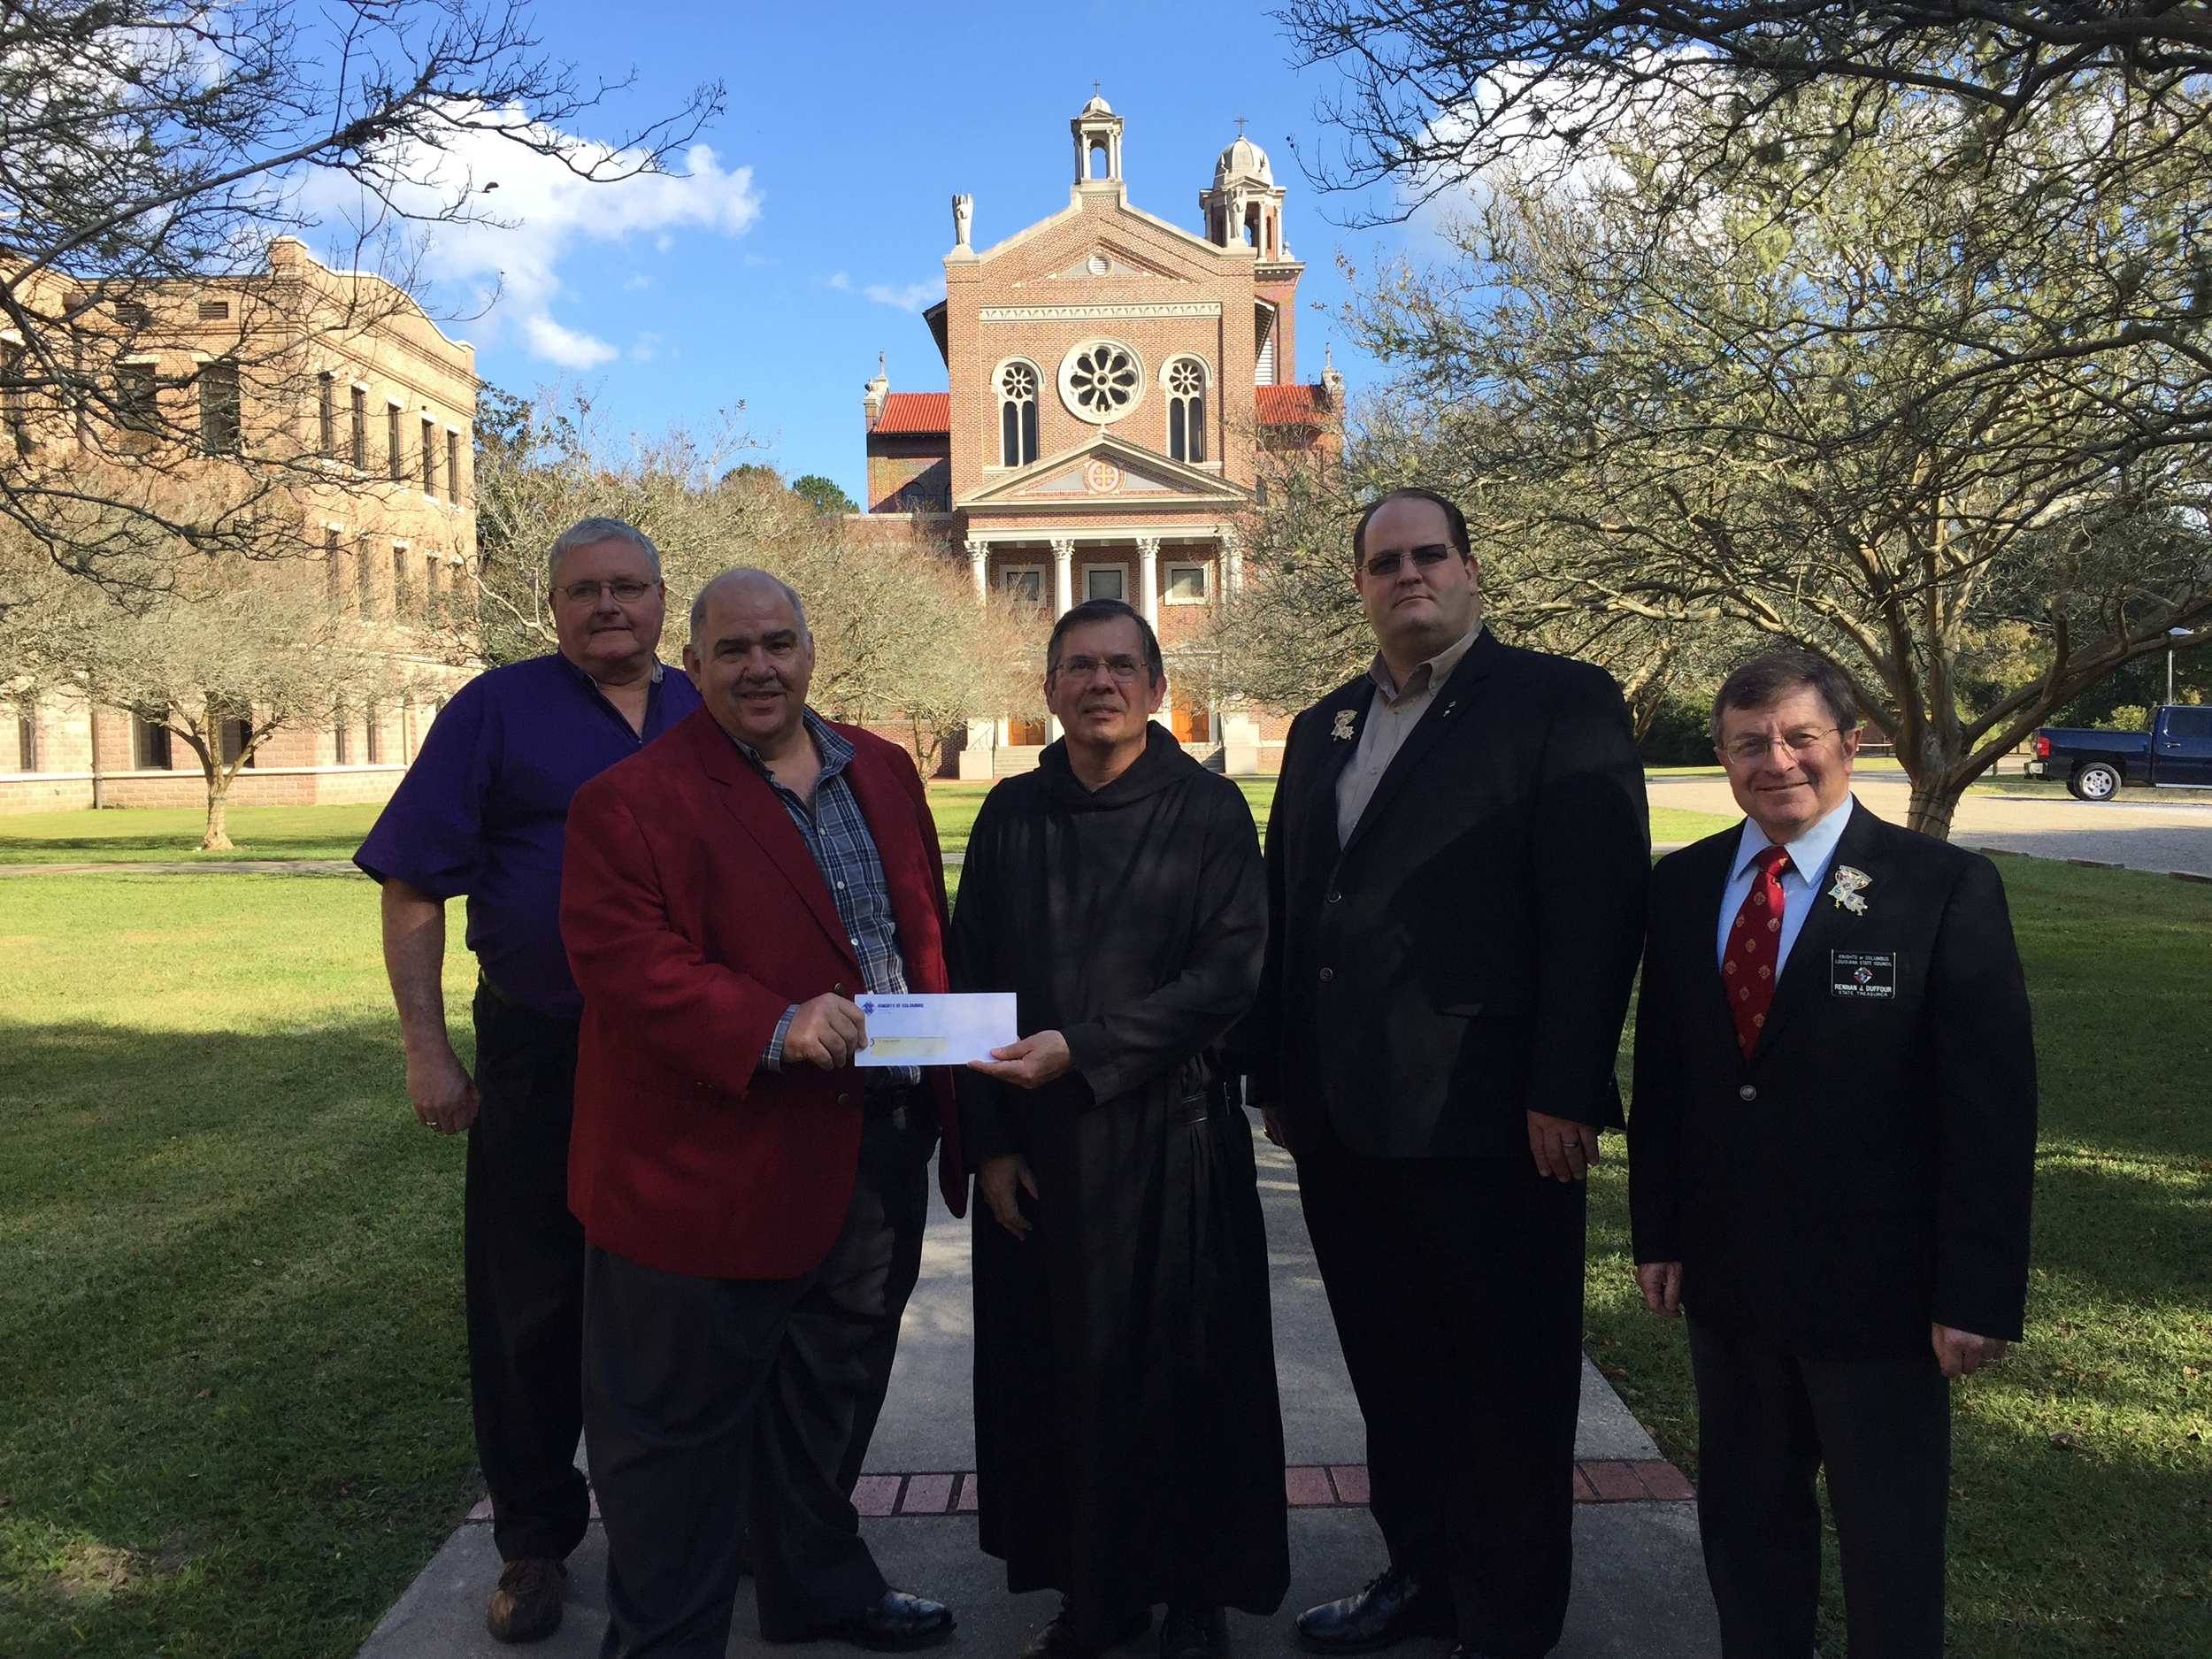 Saint Joseph Seminary College was presented a check for $20,000 from members of the Knights of Columbus Louisiana State Council. The donation will be used for the seminary's mission immersion program. From left to right are Keith Lawson, state warden, Delmas Forbes, Jr., seminarian mission fund chairman, Fr. Jude Israel, O.S.B., dean of students at Saint Joseph, Vernon Ducote, state deputy and Rennan Duffour, state treasurer.